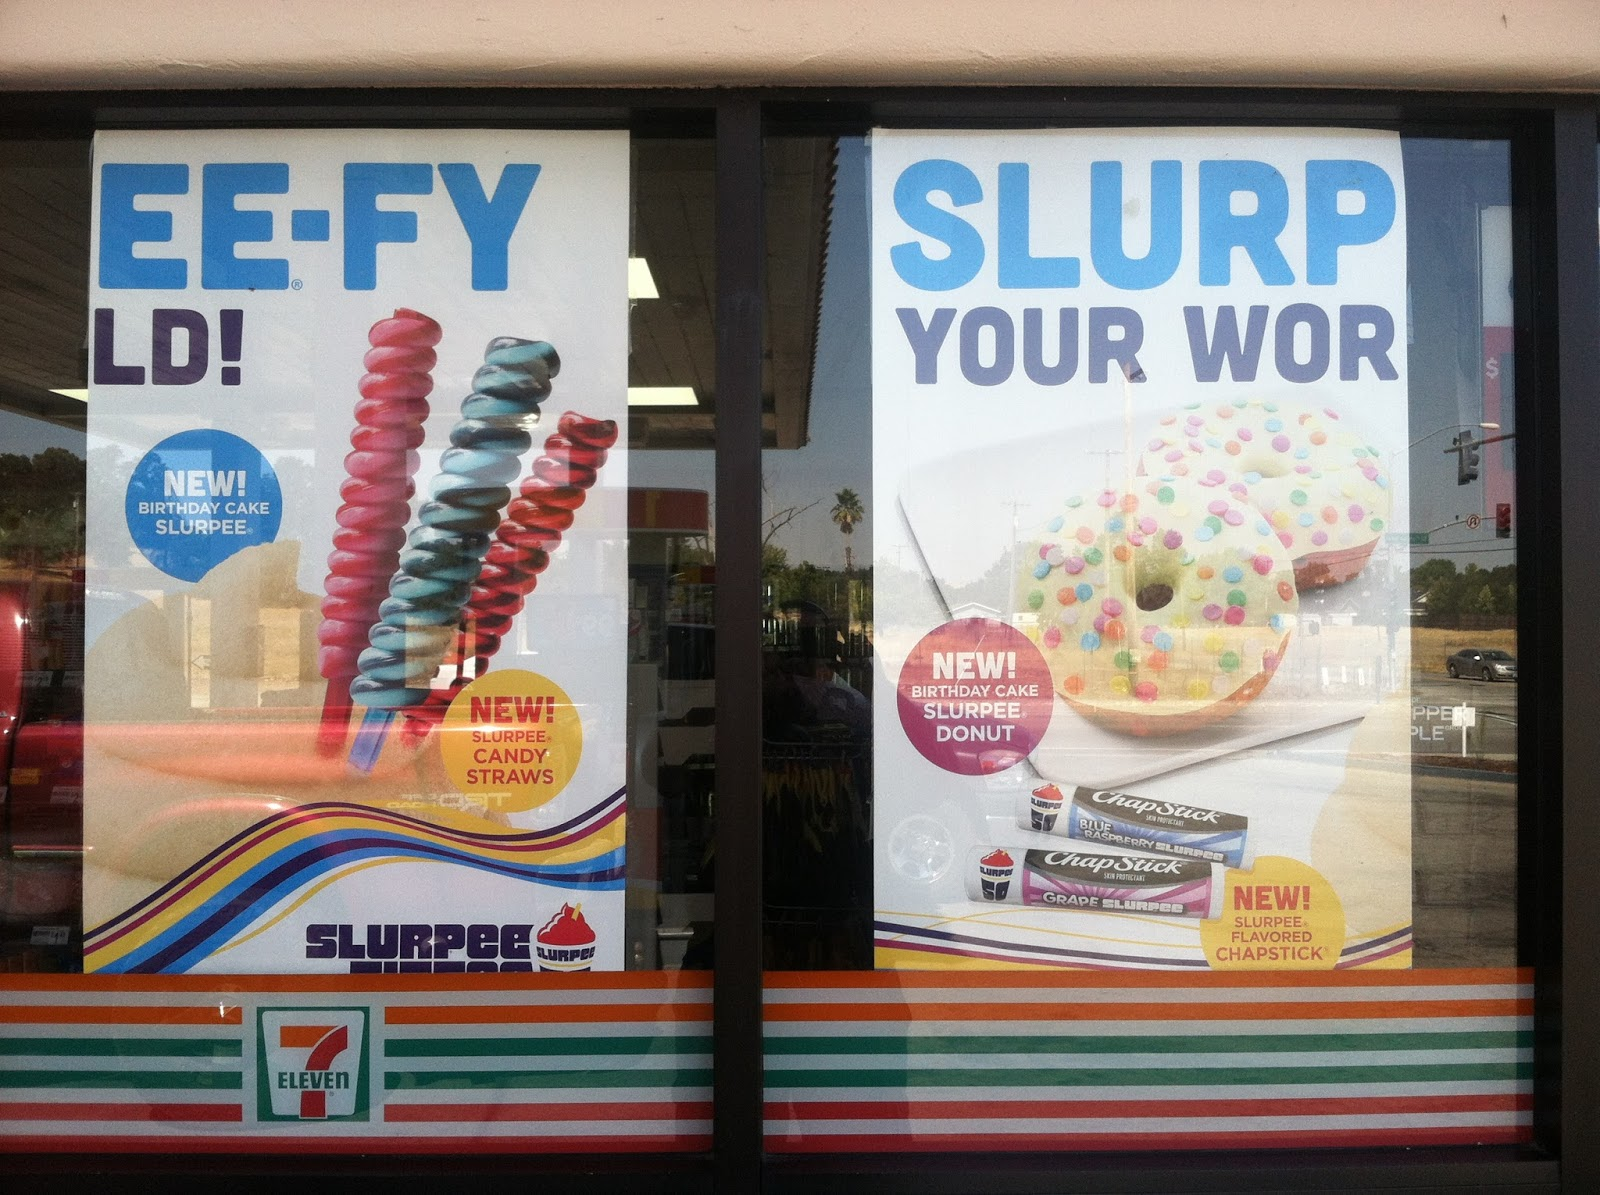 Eclectic Arcania: Picture of the Day - Ify Slurpee Spelling